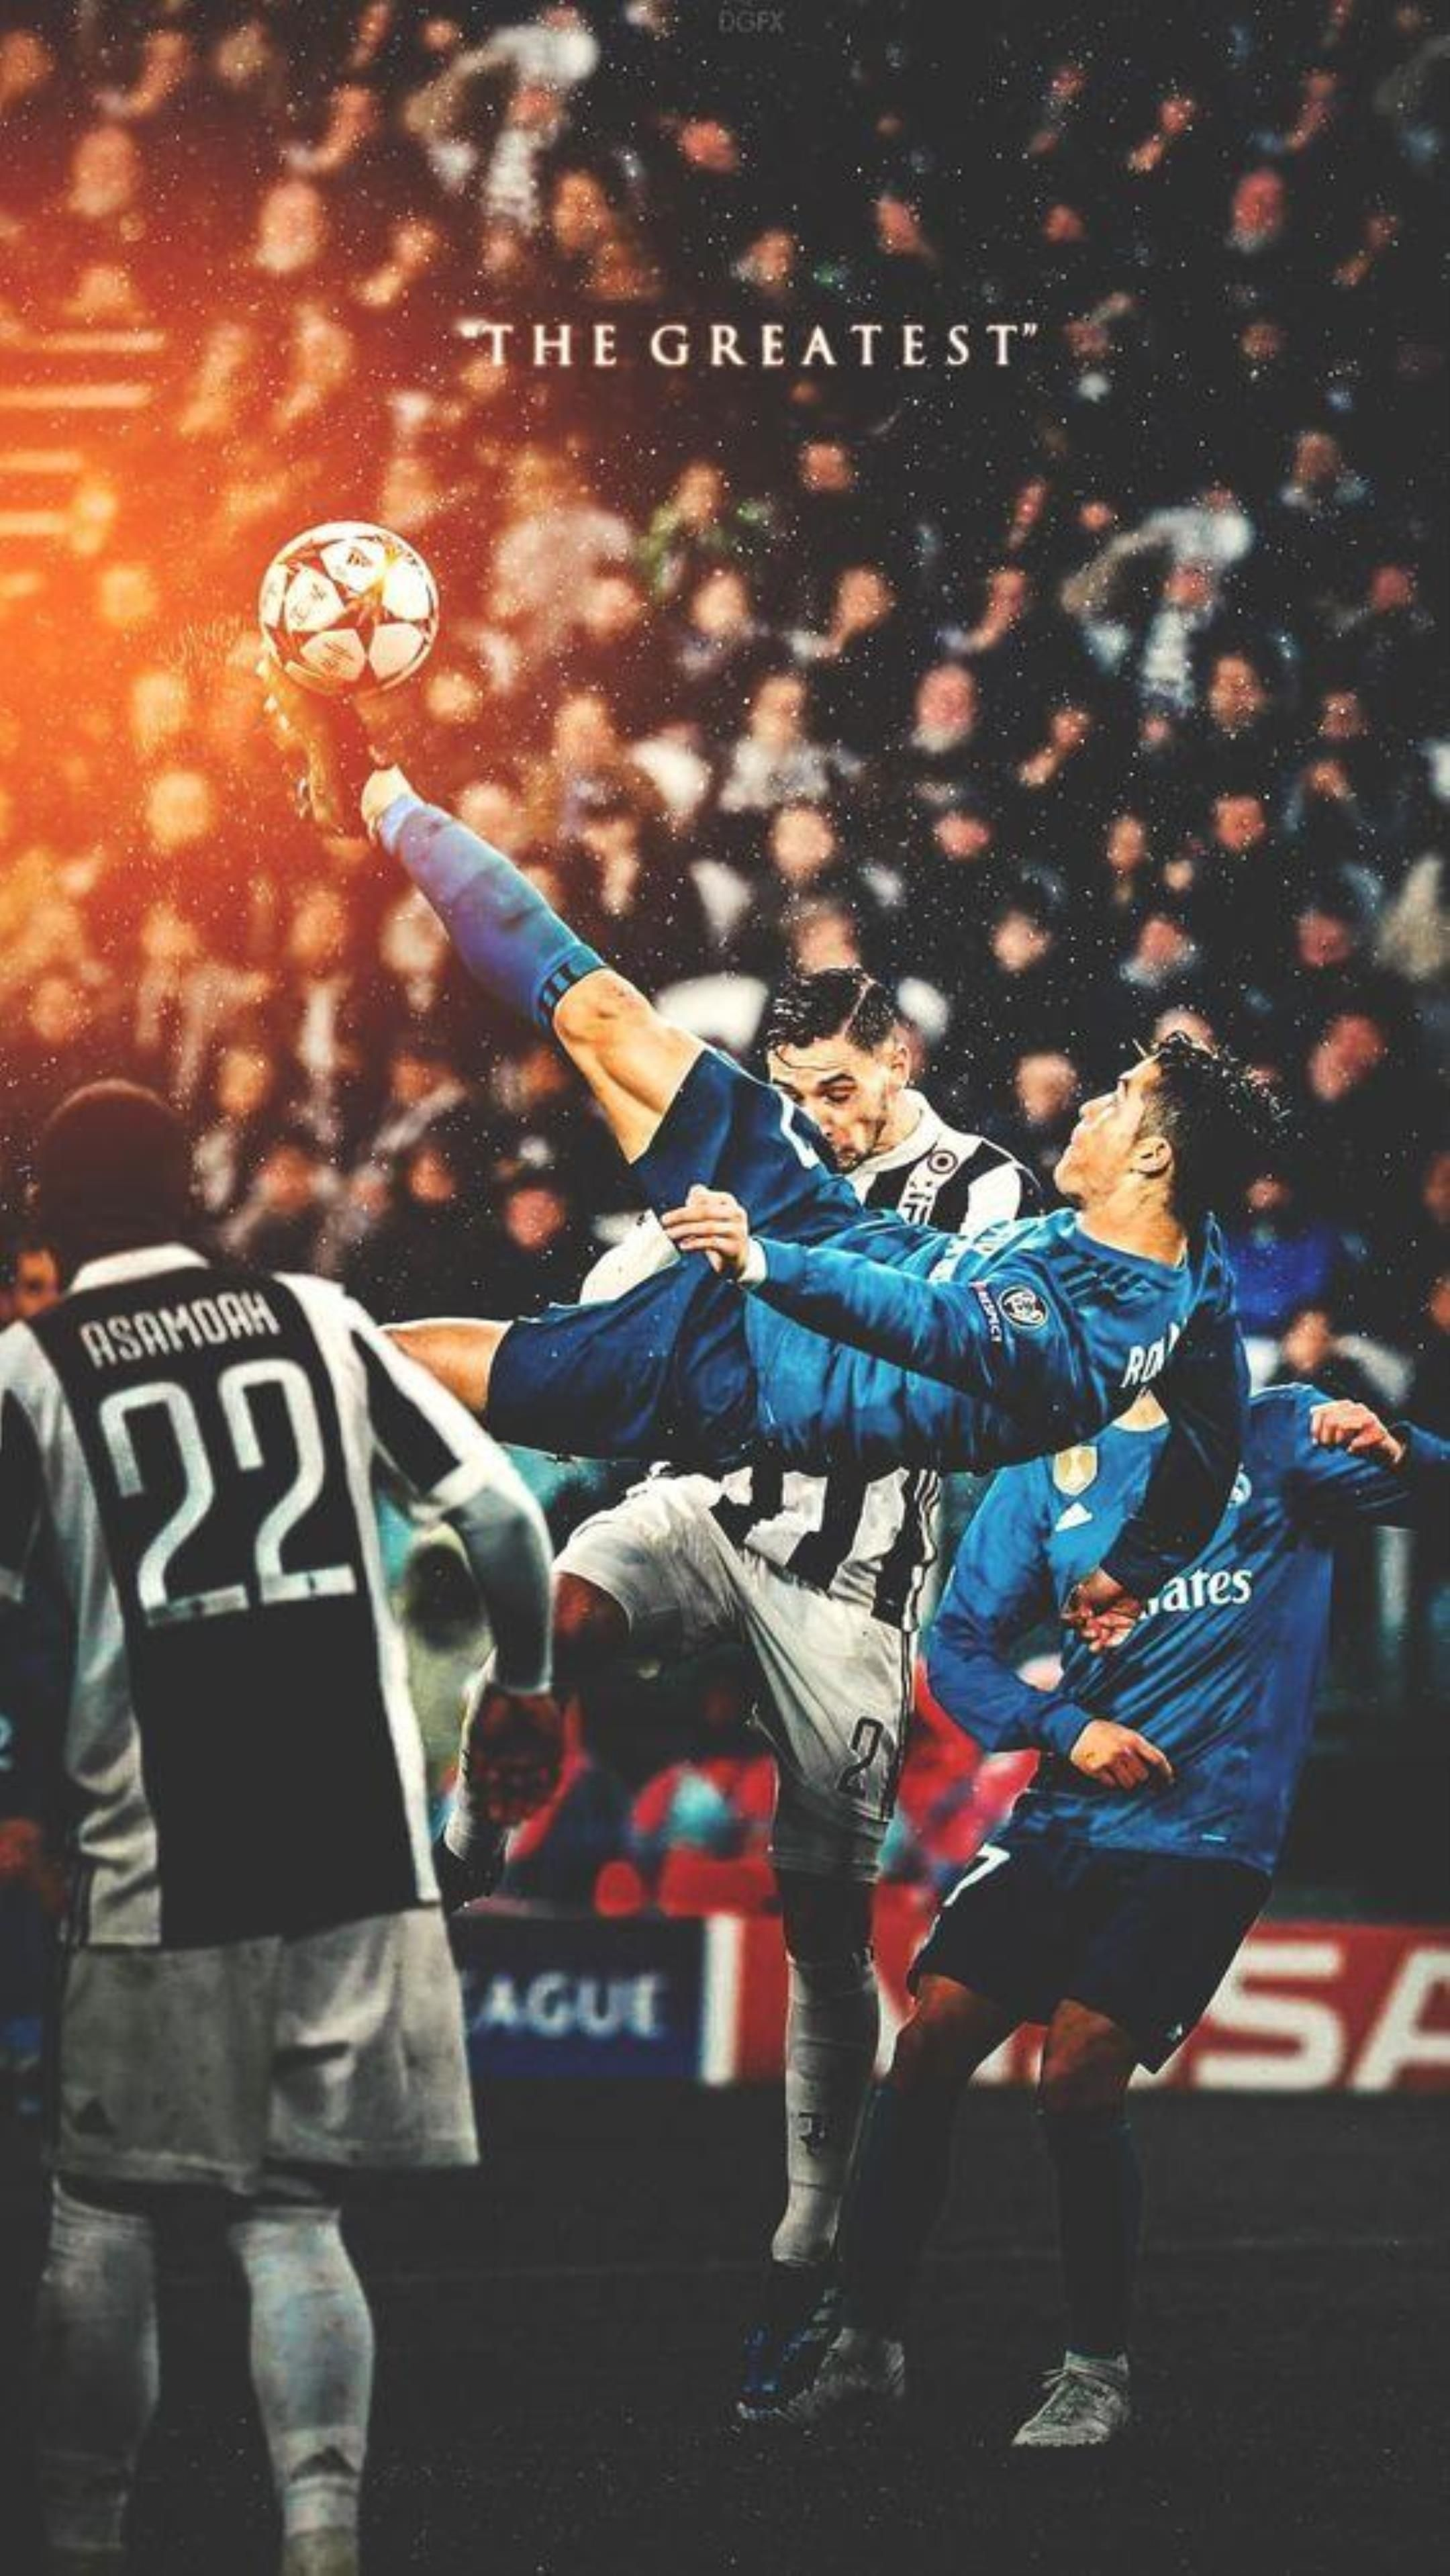 Football Ronaldo Juventus Real Madrid Wallpapers Hd 4k Background For Android Cristiano Ronaldo Juventus Cristiano Ronaldo Wallpapers Crstiano Ronaldo